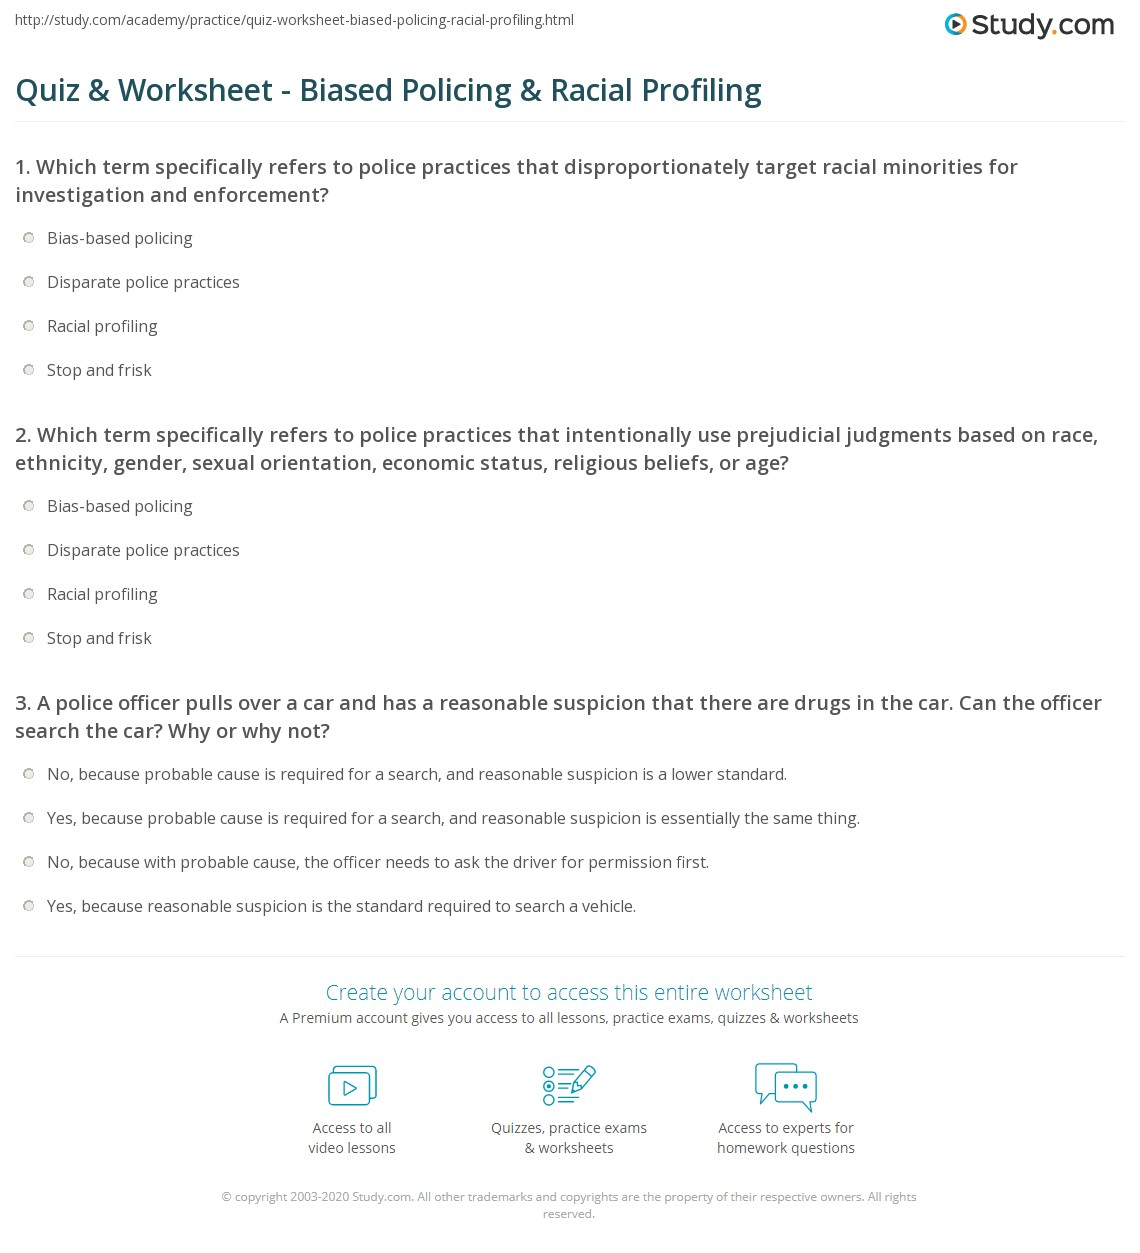 quiz & worksheet - biased policing & racial profiling | study